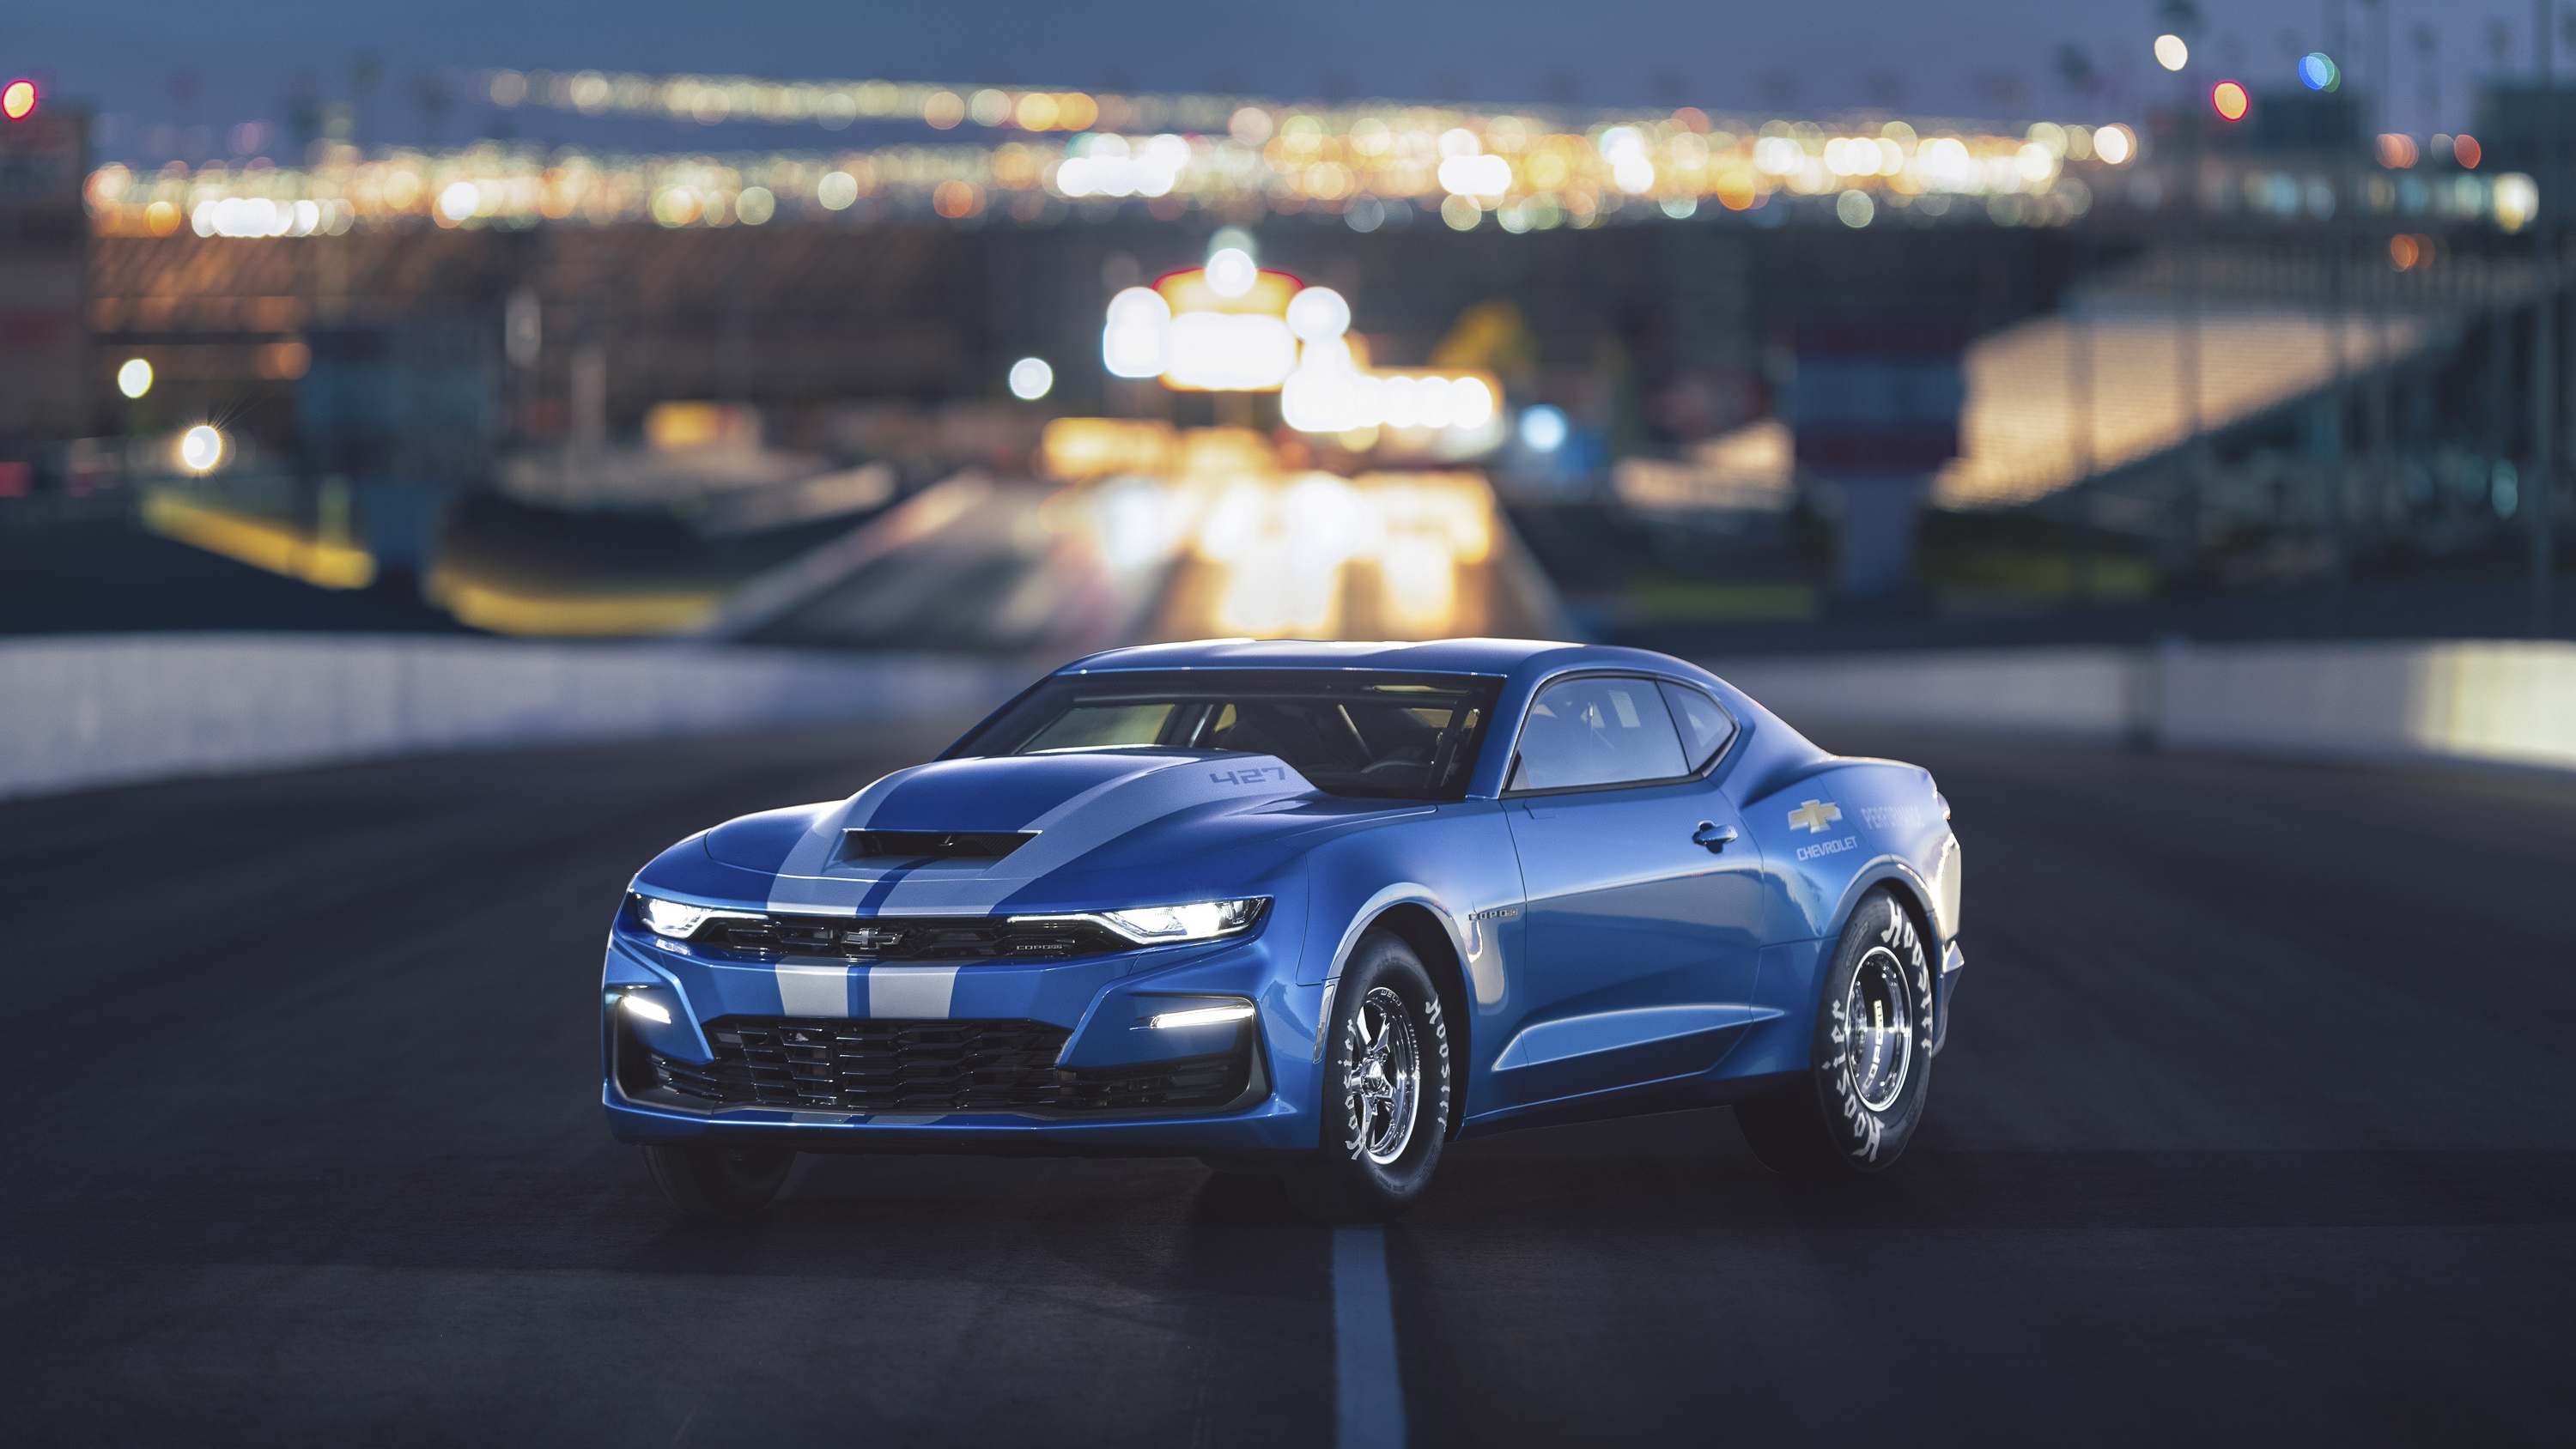 2019 chevrolet copo camaro pictures  photos  wallpapers